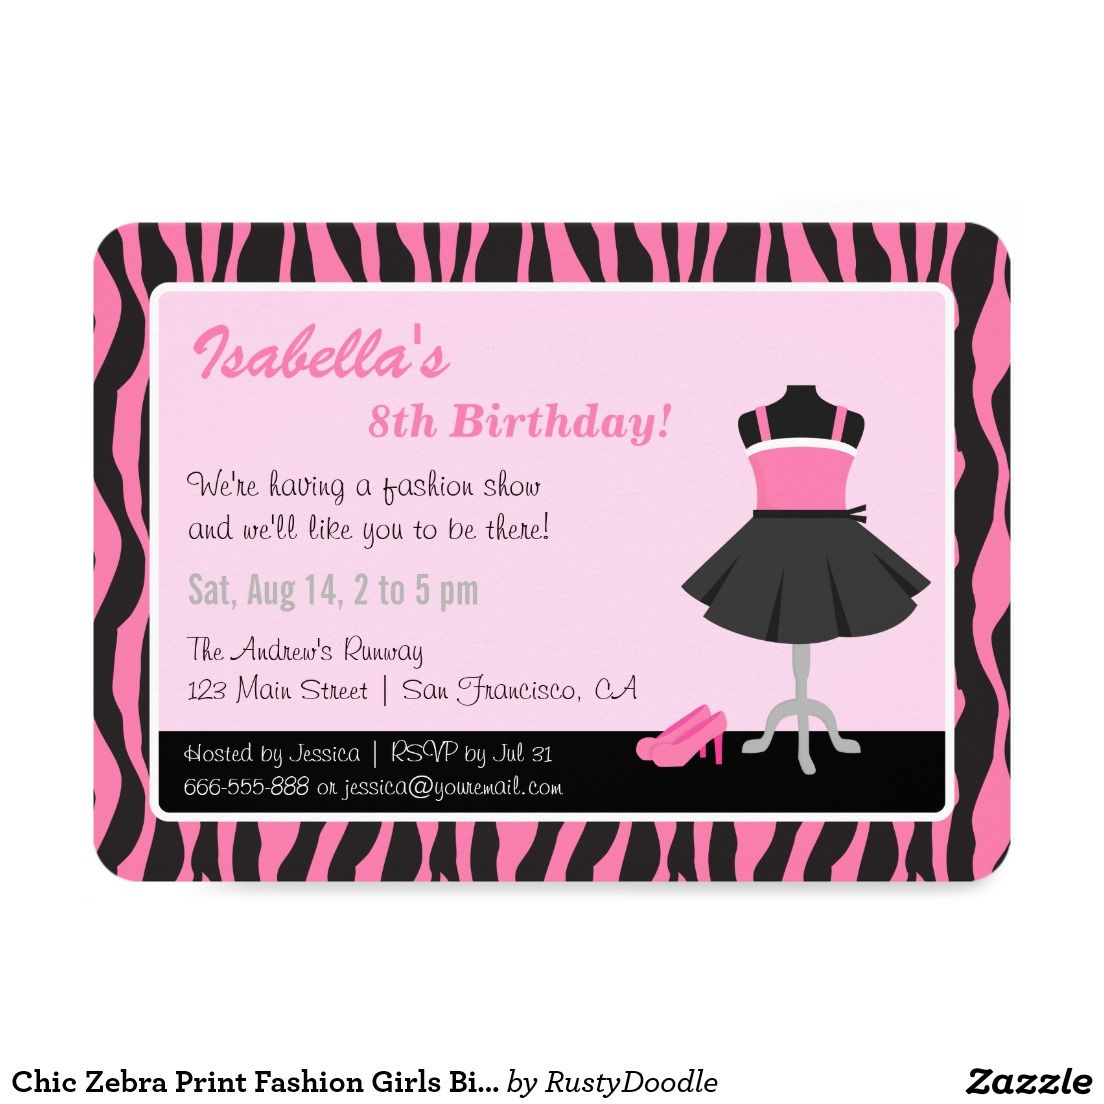 Chic Zebra Print Fashion Girls Birthday Party Card | Girl birthday ...